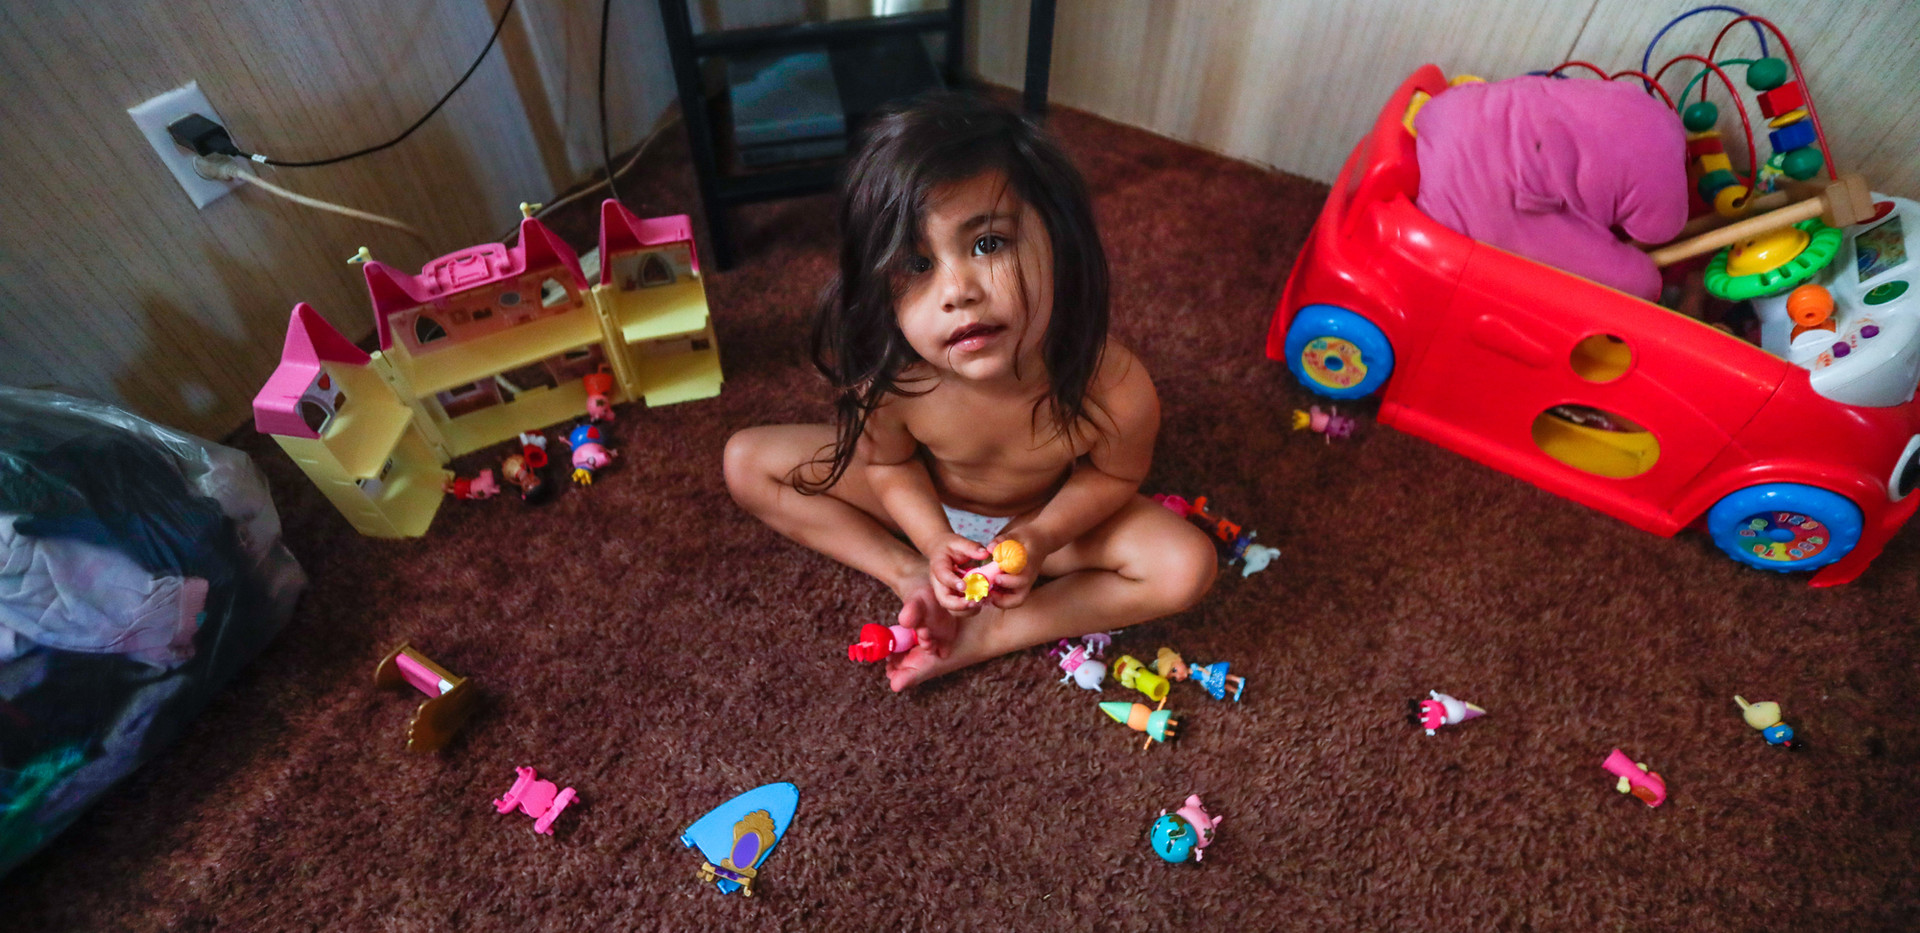 """Zulele """"Victoria,"""" 3, looks up from her toys that she plays with on the living room floor of her family's trailer located off of Aenon Church Road."""